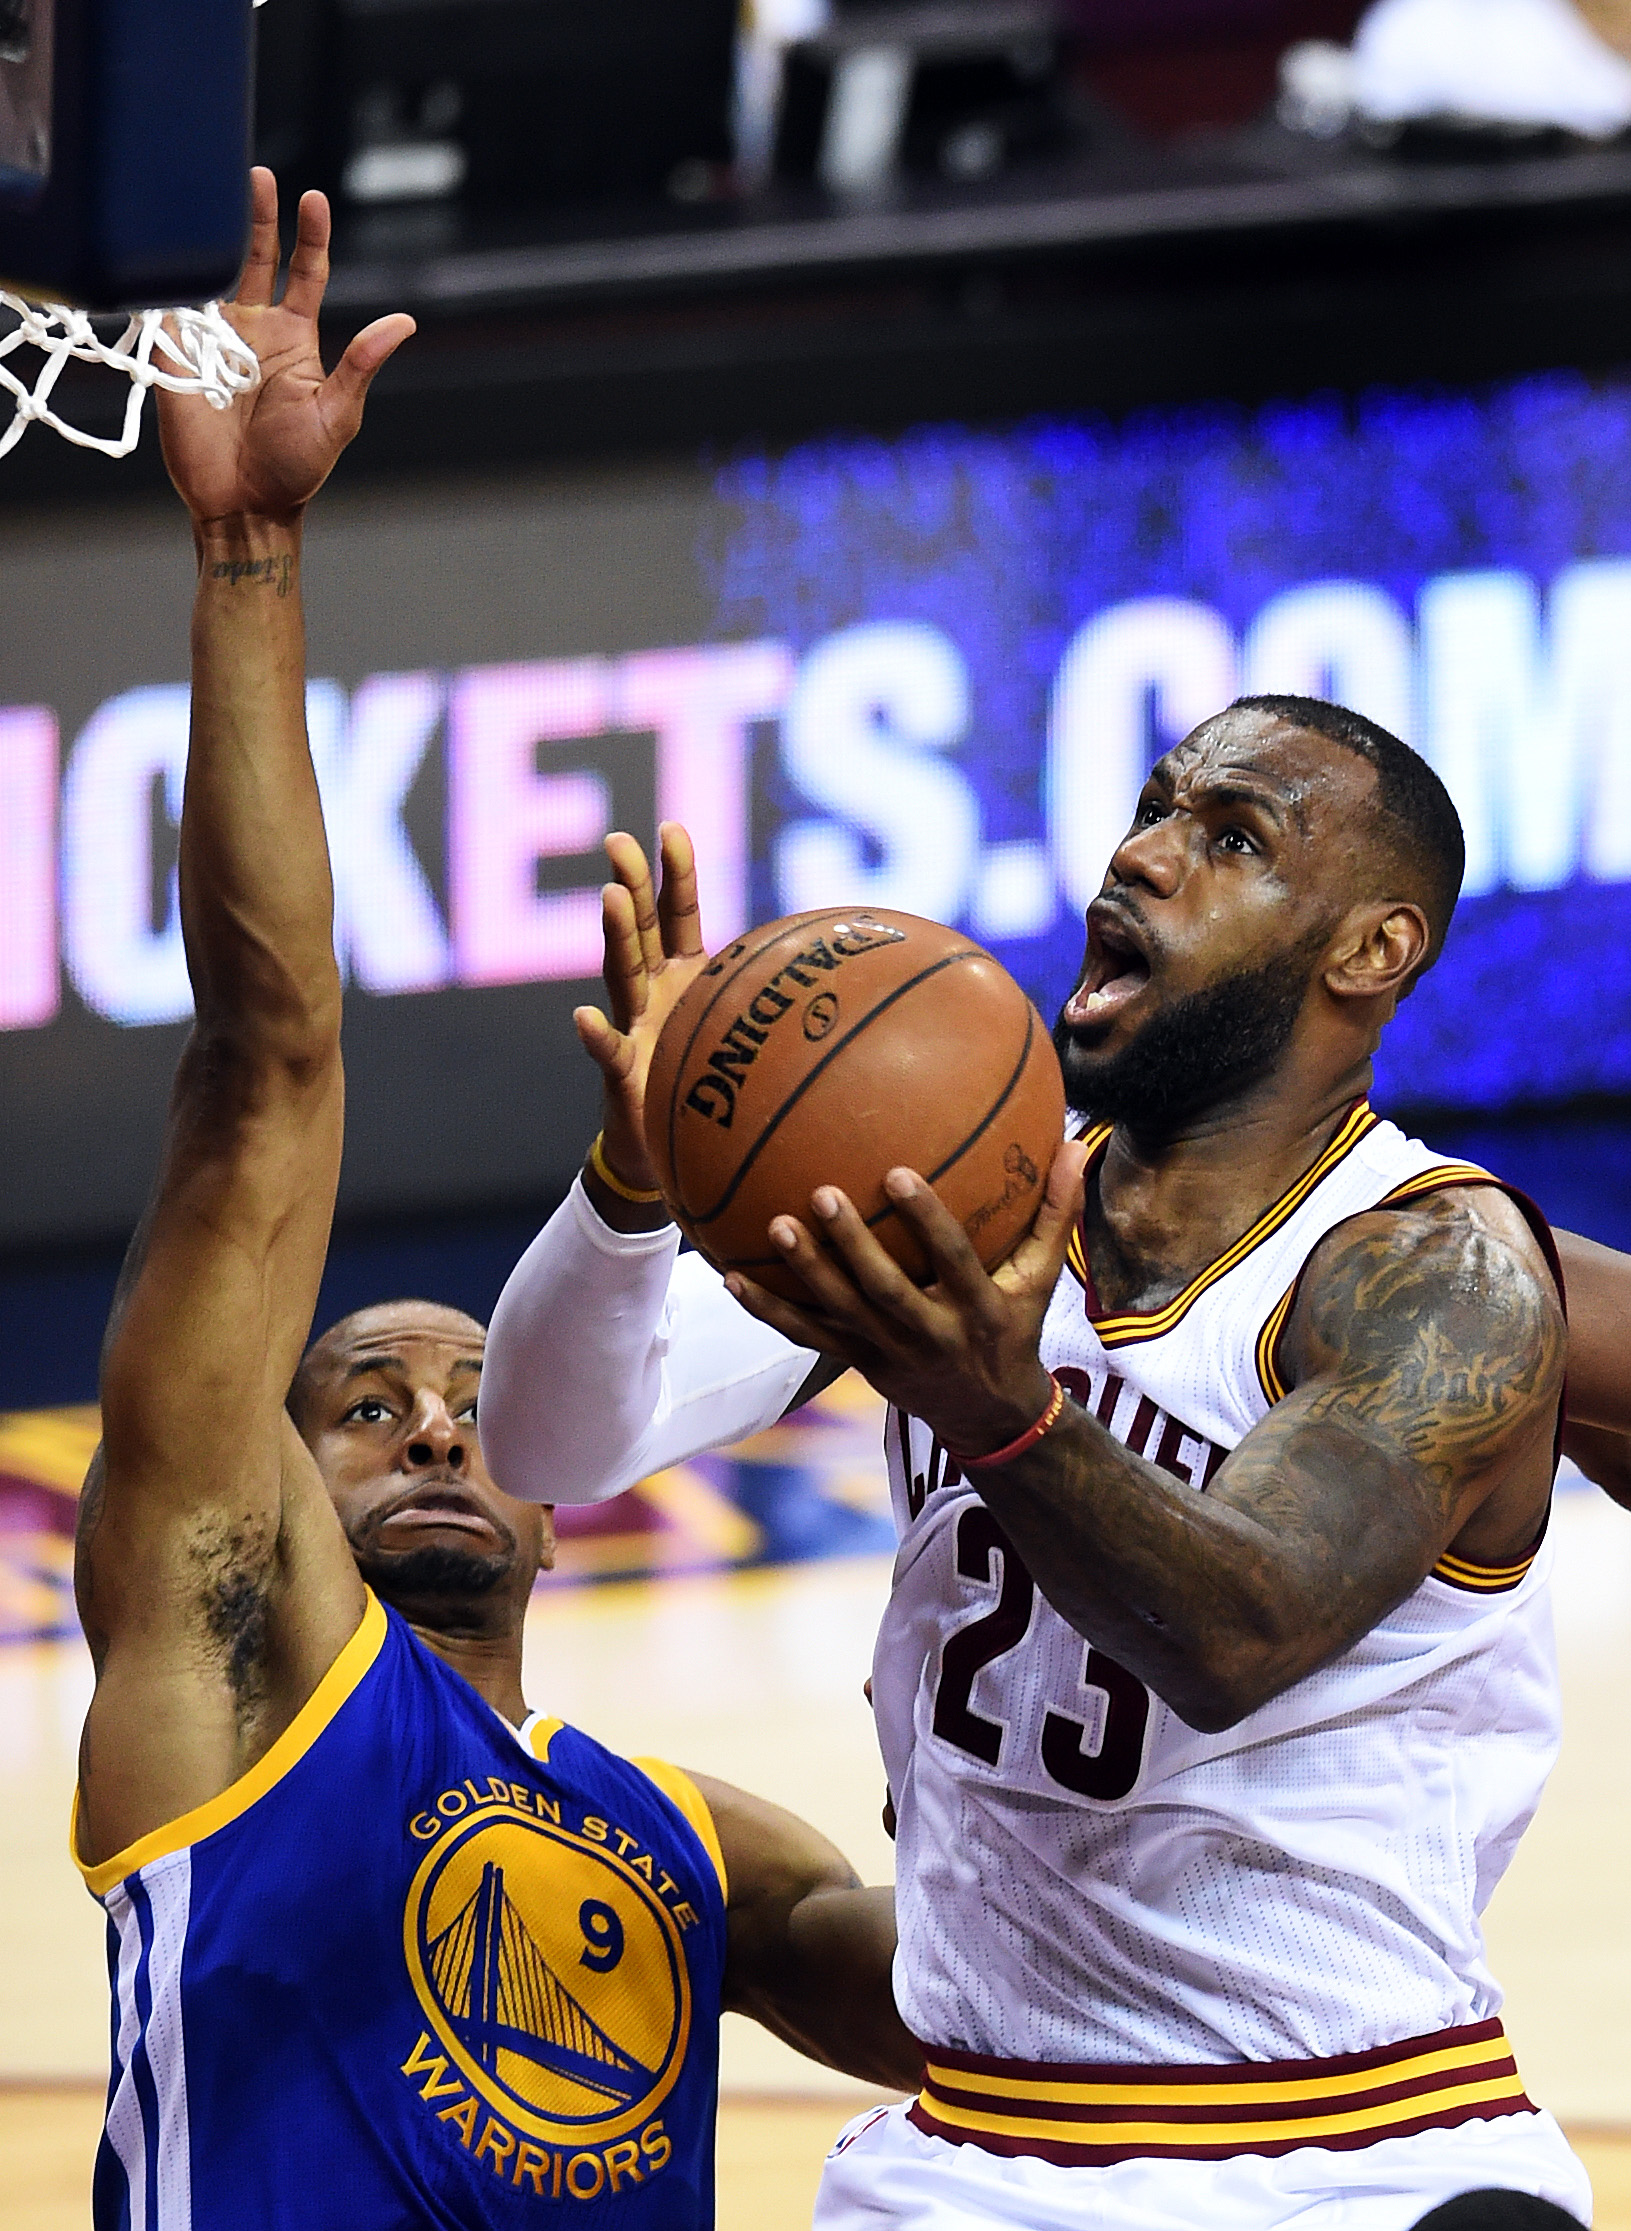 CLEVELAND, OH - JUNE 16:  LeBron James #23 of the Cleveland Cavaliers goes up against Andre Iguodala #9 of the Golden State Warriors during Game Six of the 2015 NBA Finals at Quicken Loans Arena on June 16, 2015 in Cleveland, Ohio. (Photo by Jason Miller/